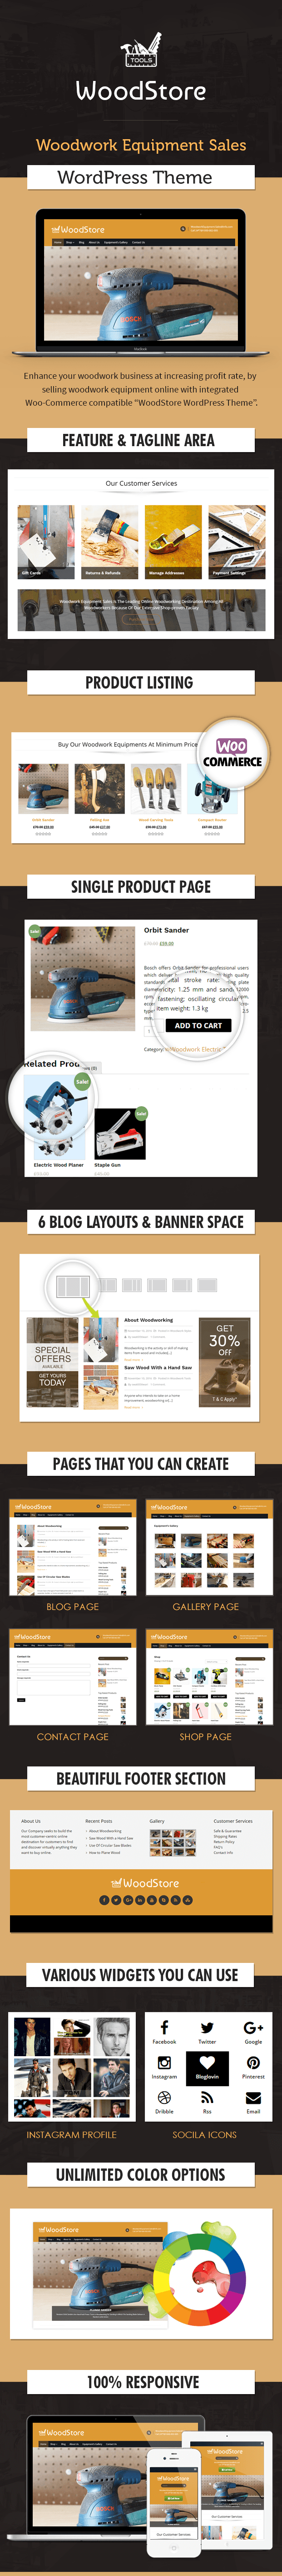 WoodWork Equipment Sales WordPress Theme Sales Page Image